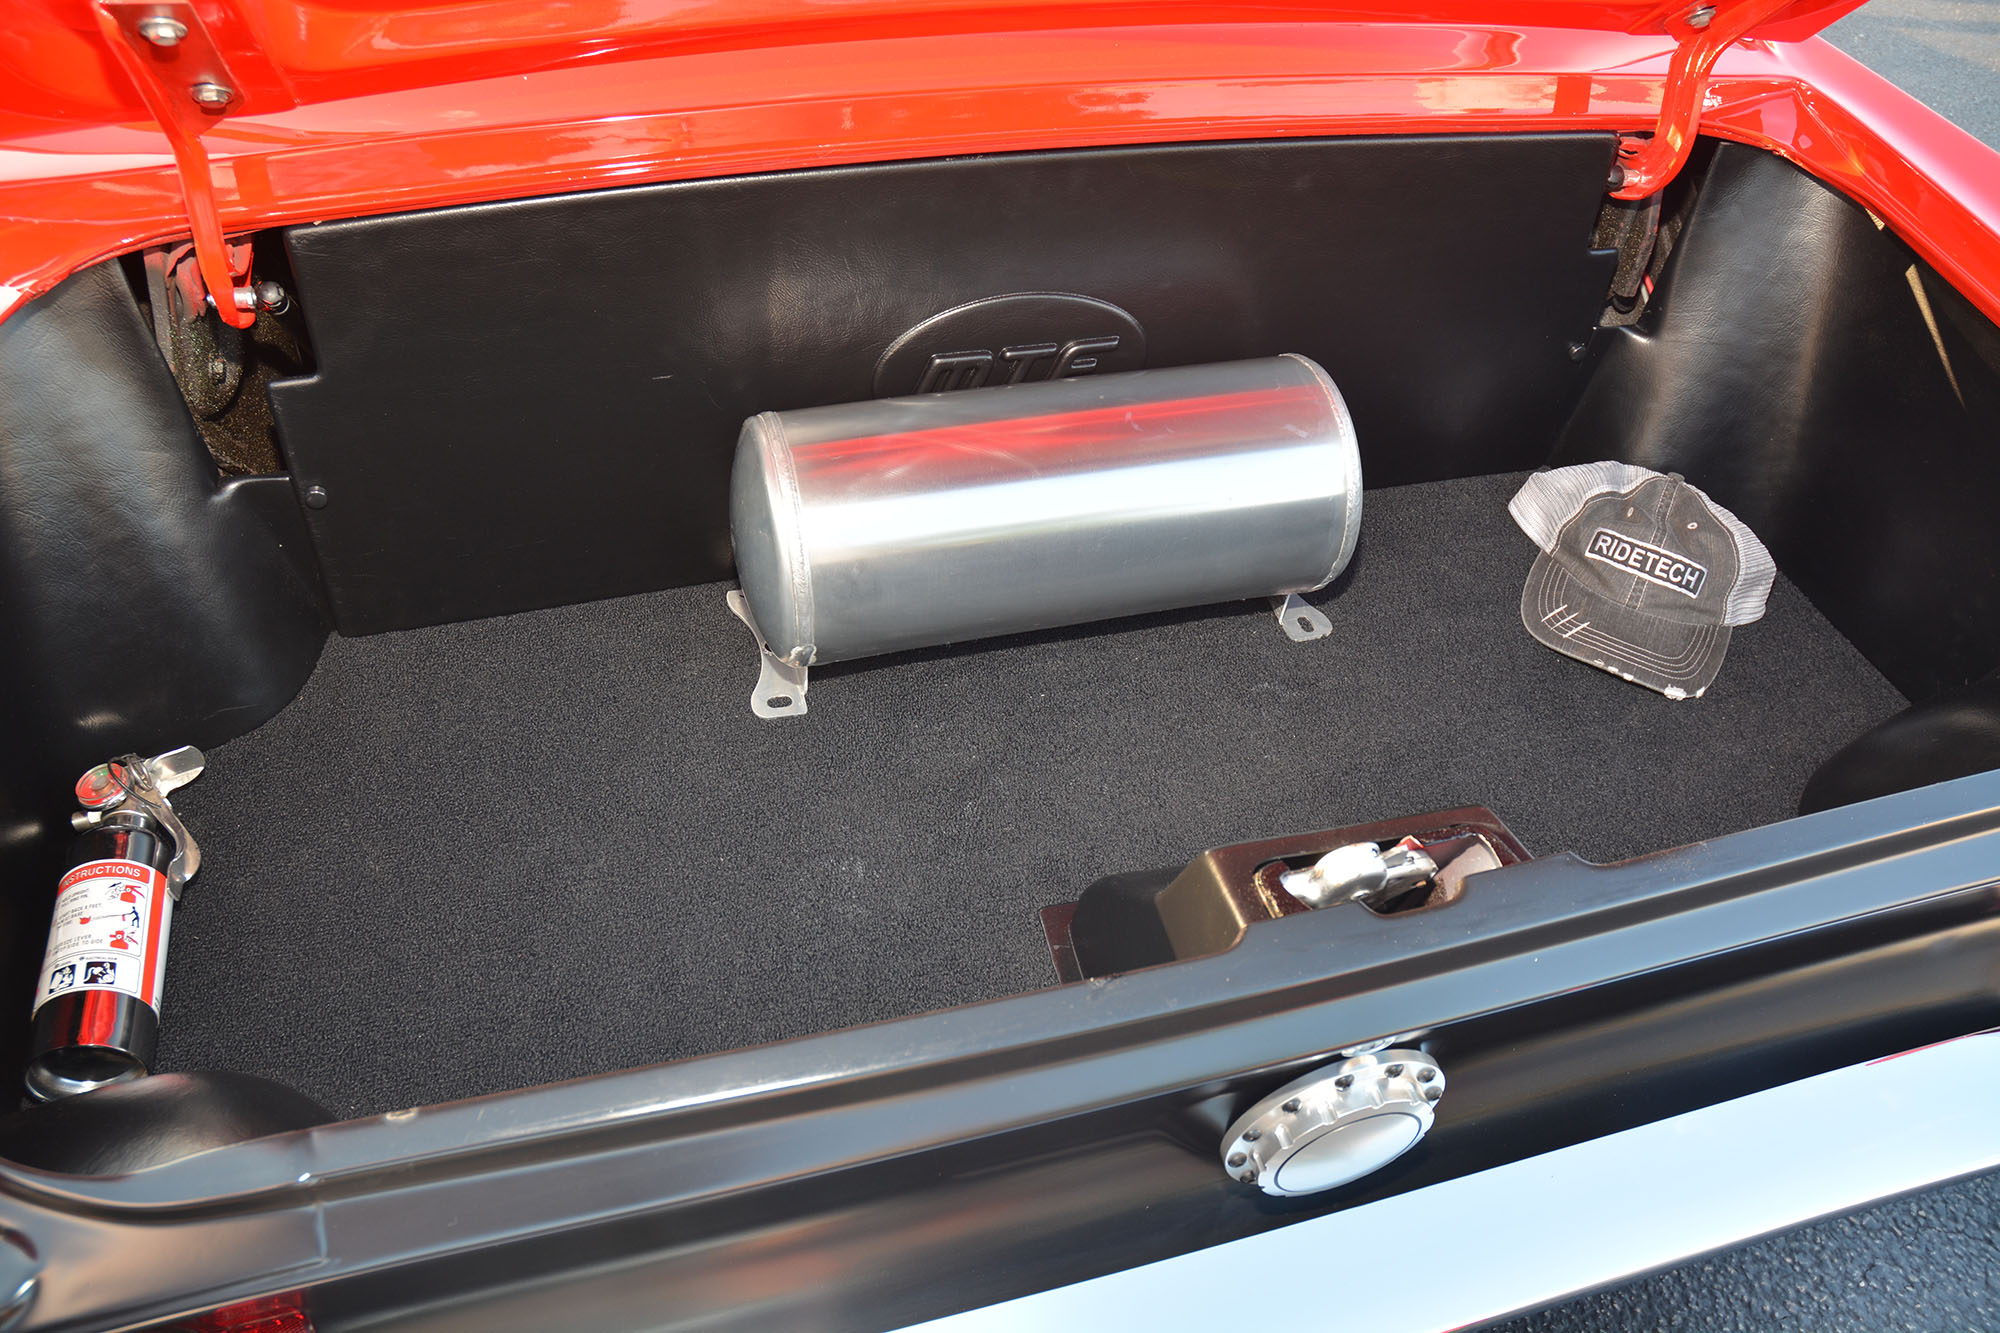 Small Air tank in trunk for air bags